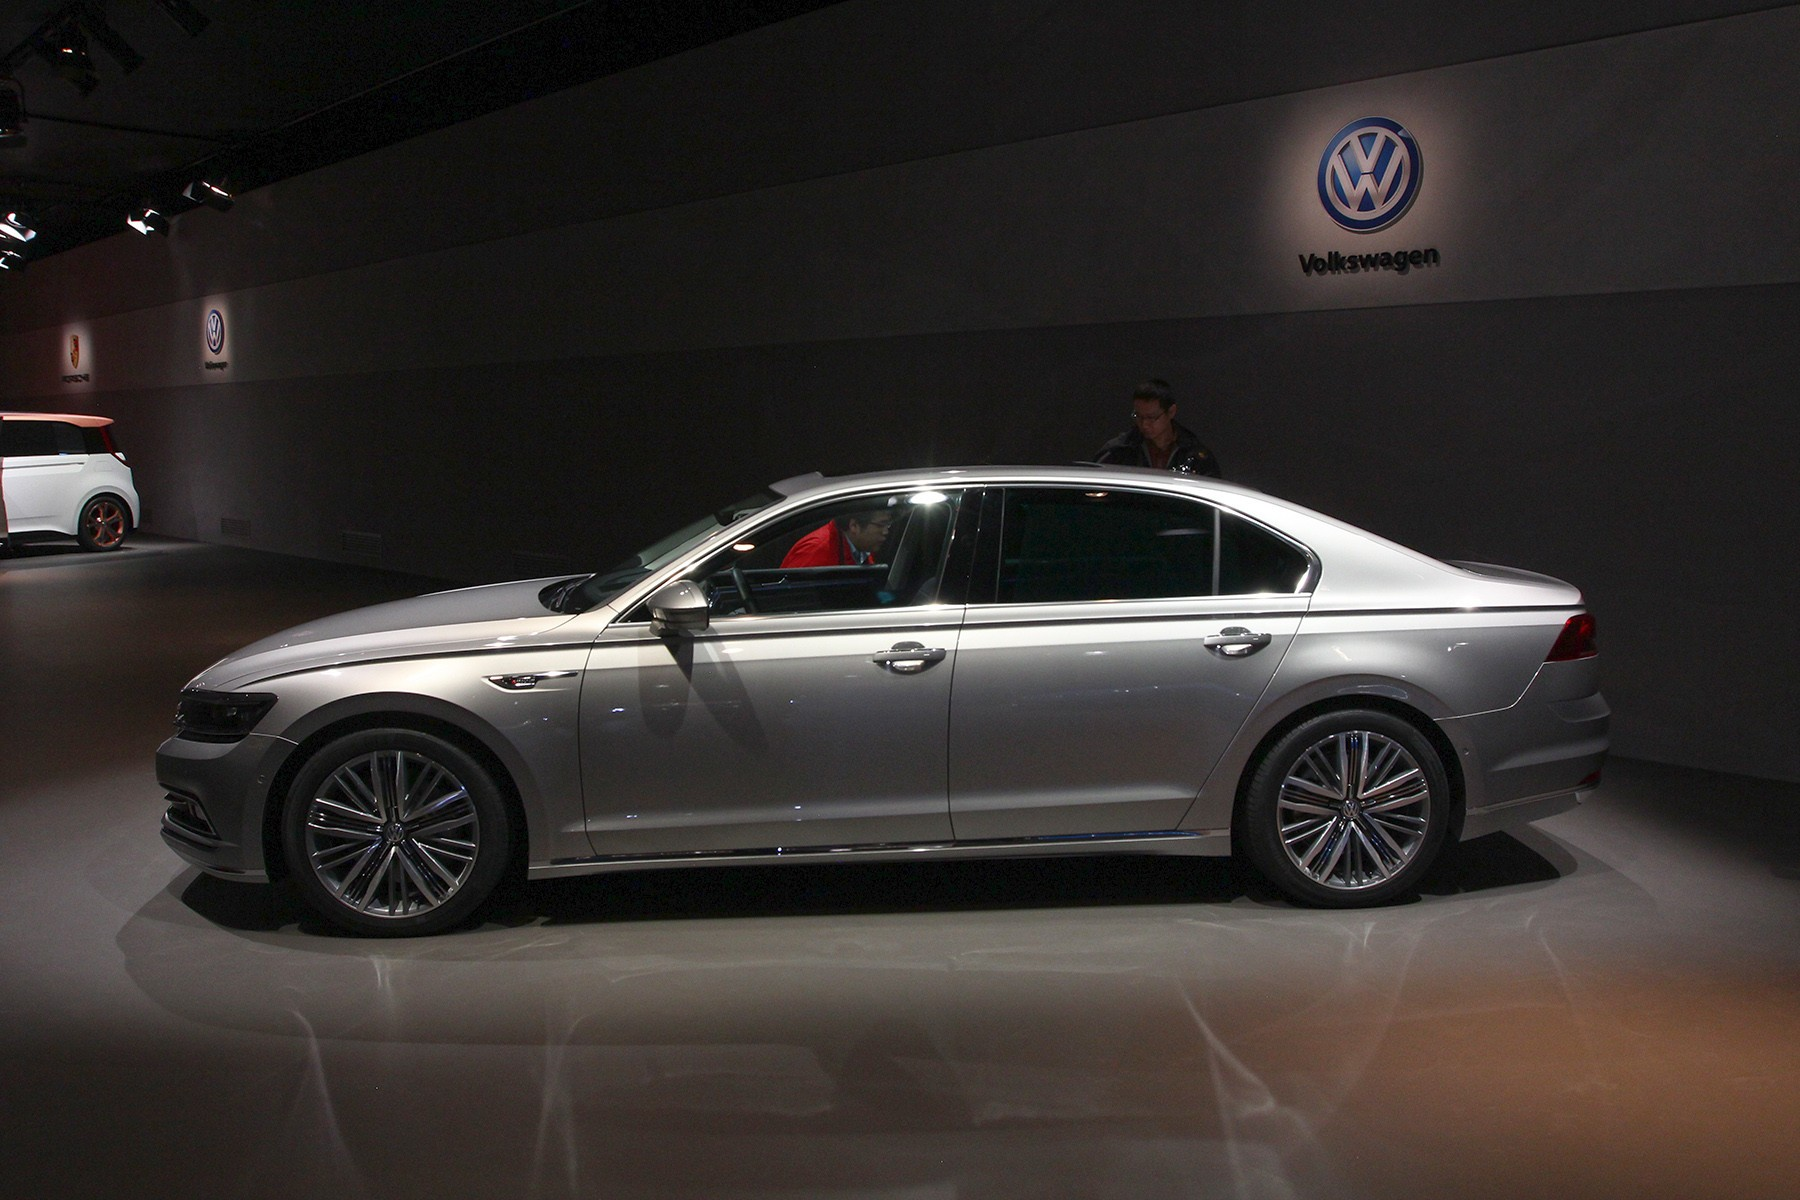 Volkswagen Phideon side view